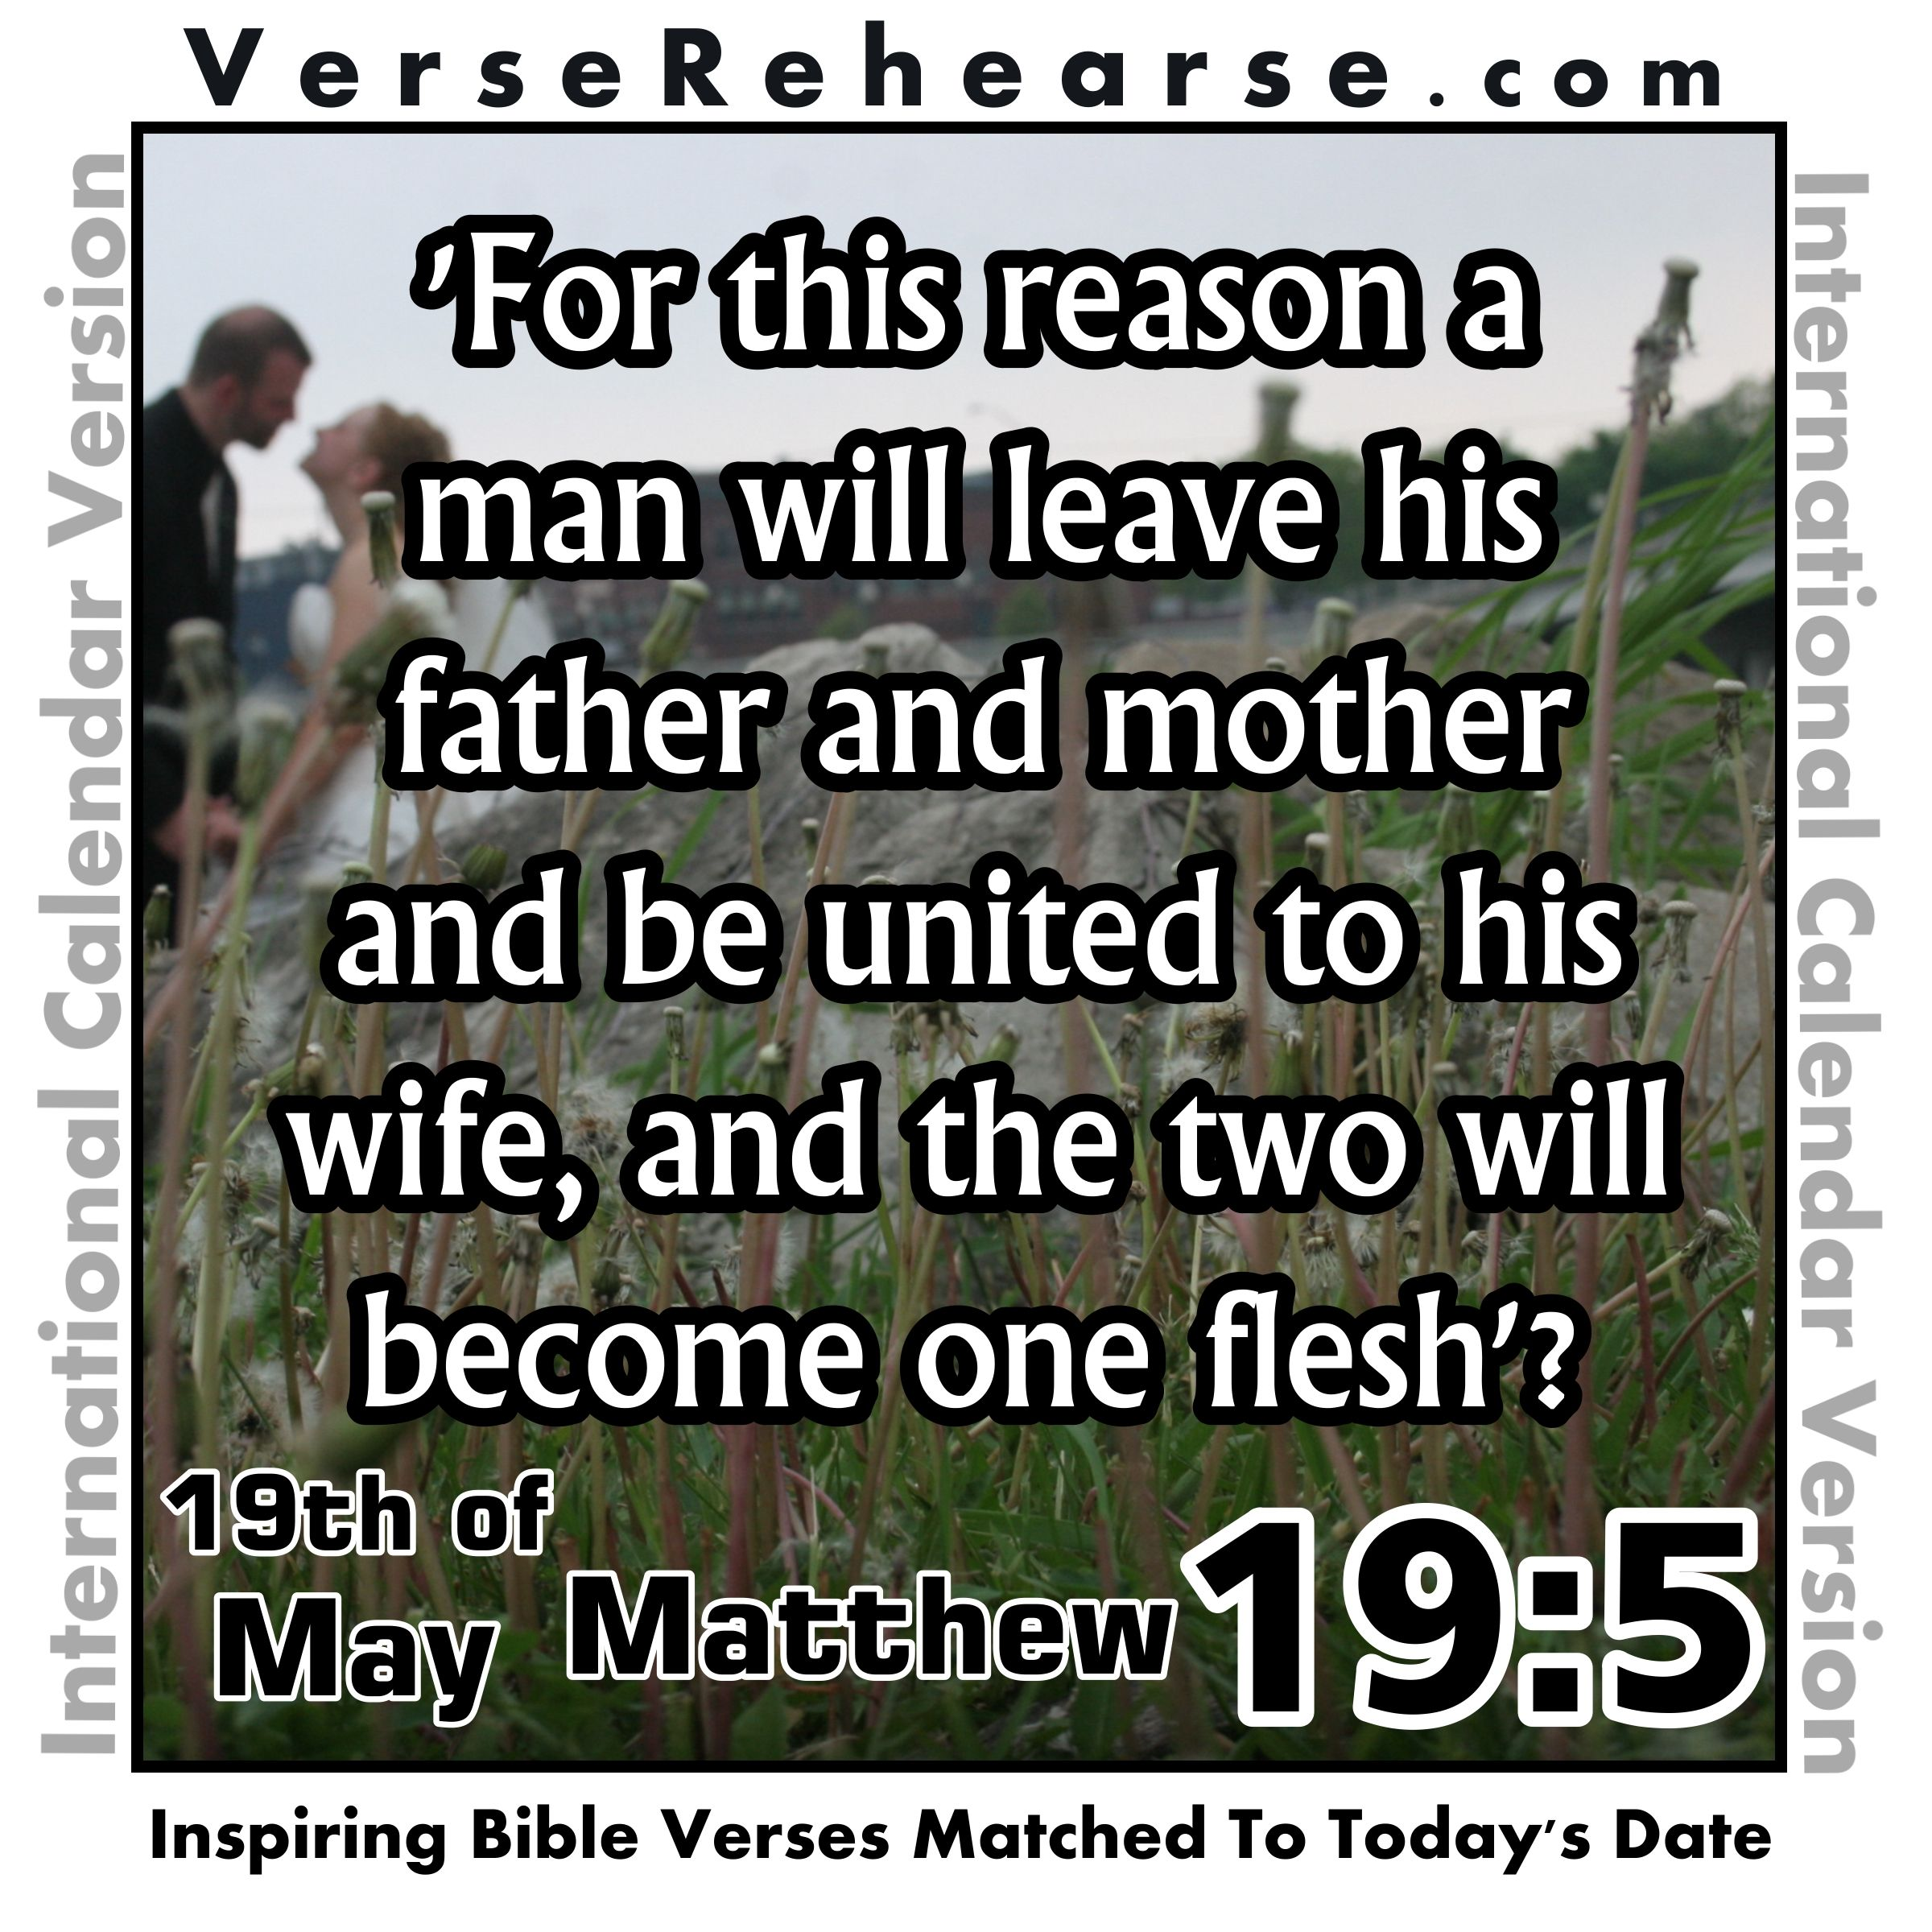 th of matthew for this reason a man will leave his 19th of matthew 19 5 for this reason a man will leave